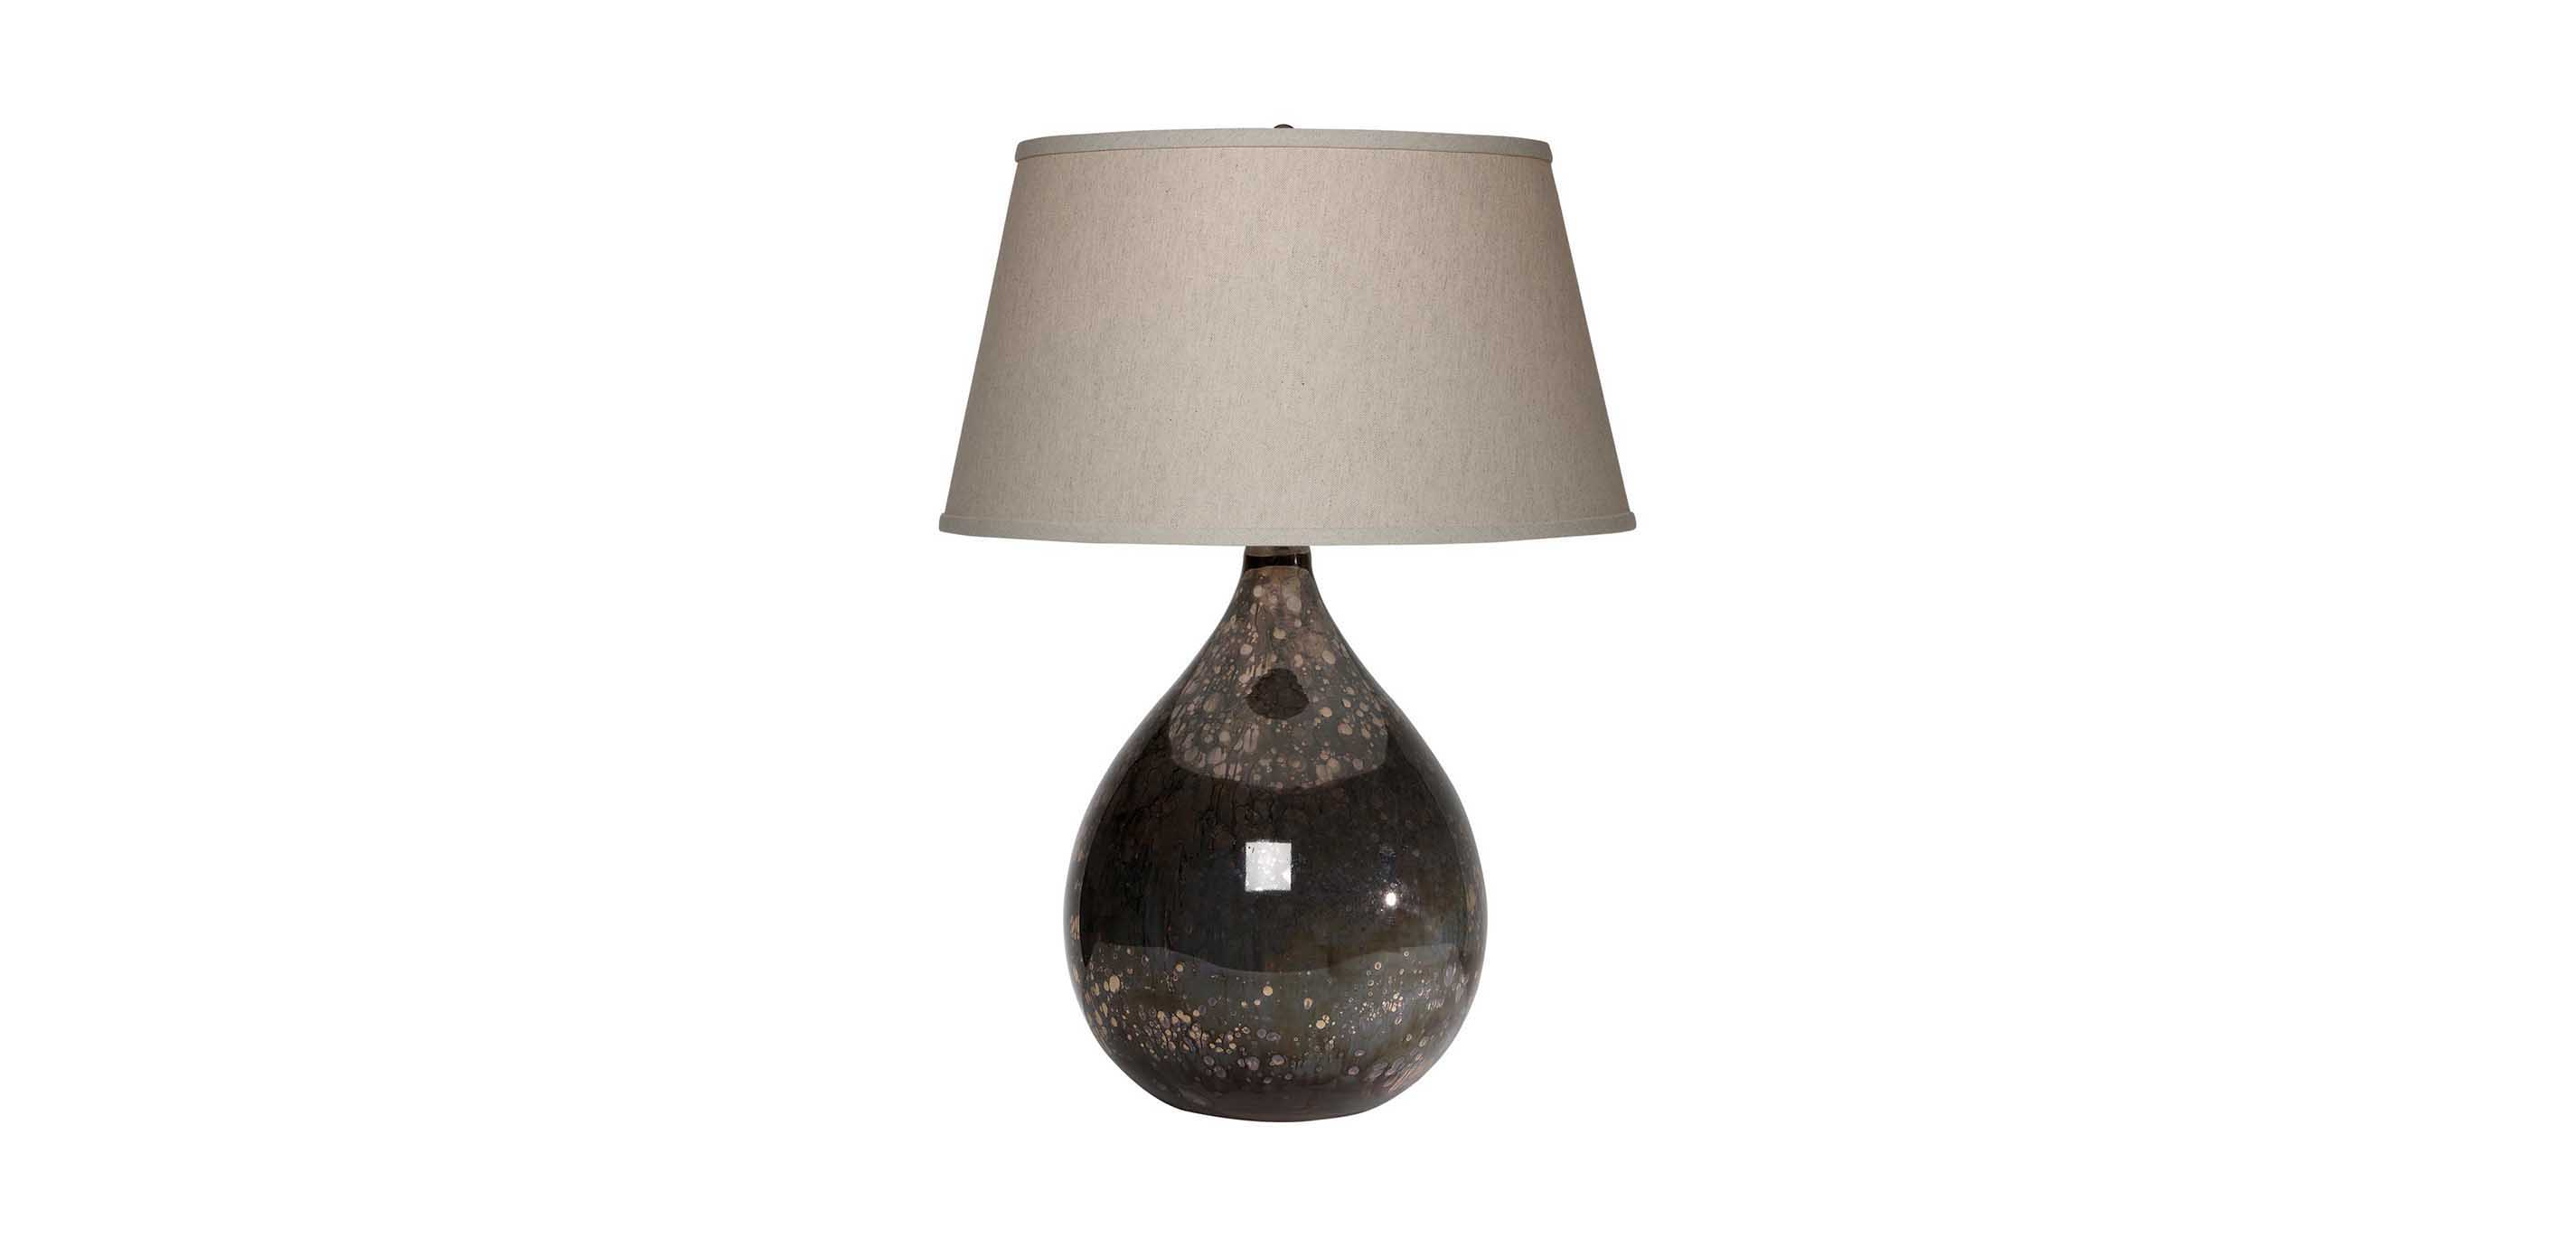 Images Karmady Table Lamp , , Large_gray